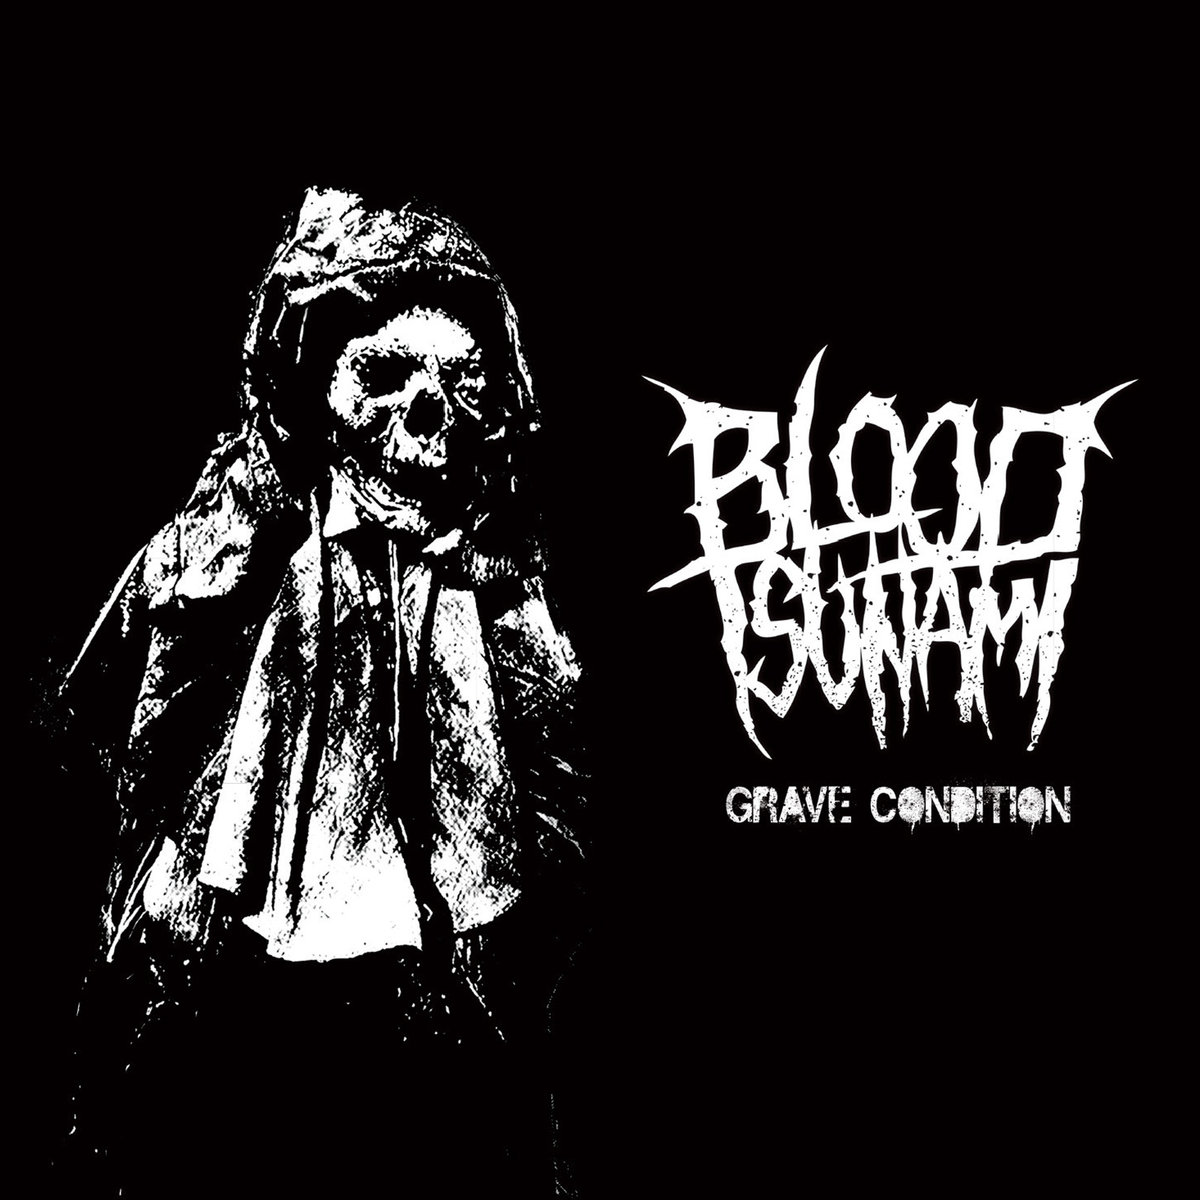 Grave Condition by Blood Tsunami